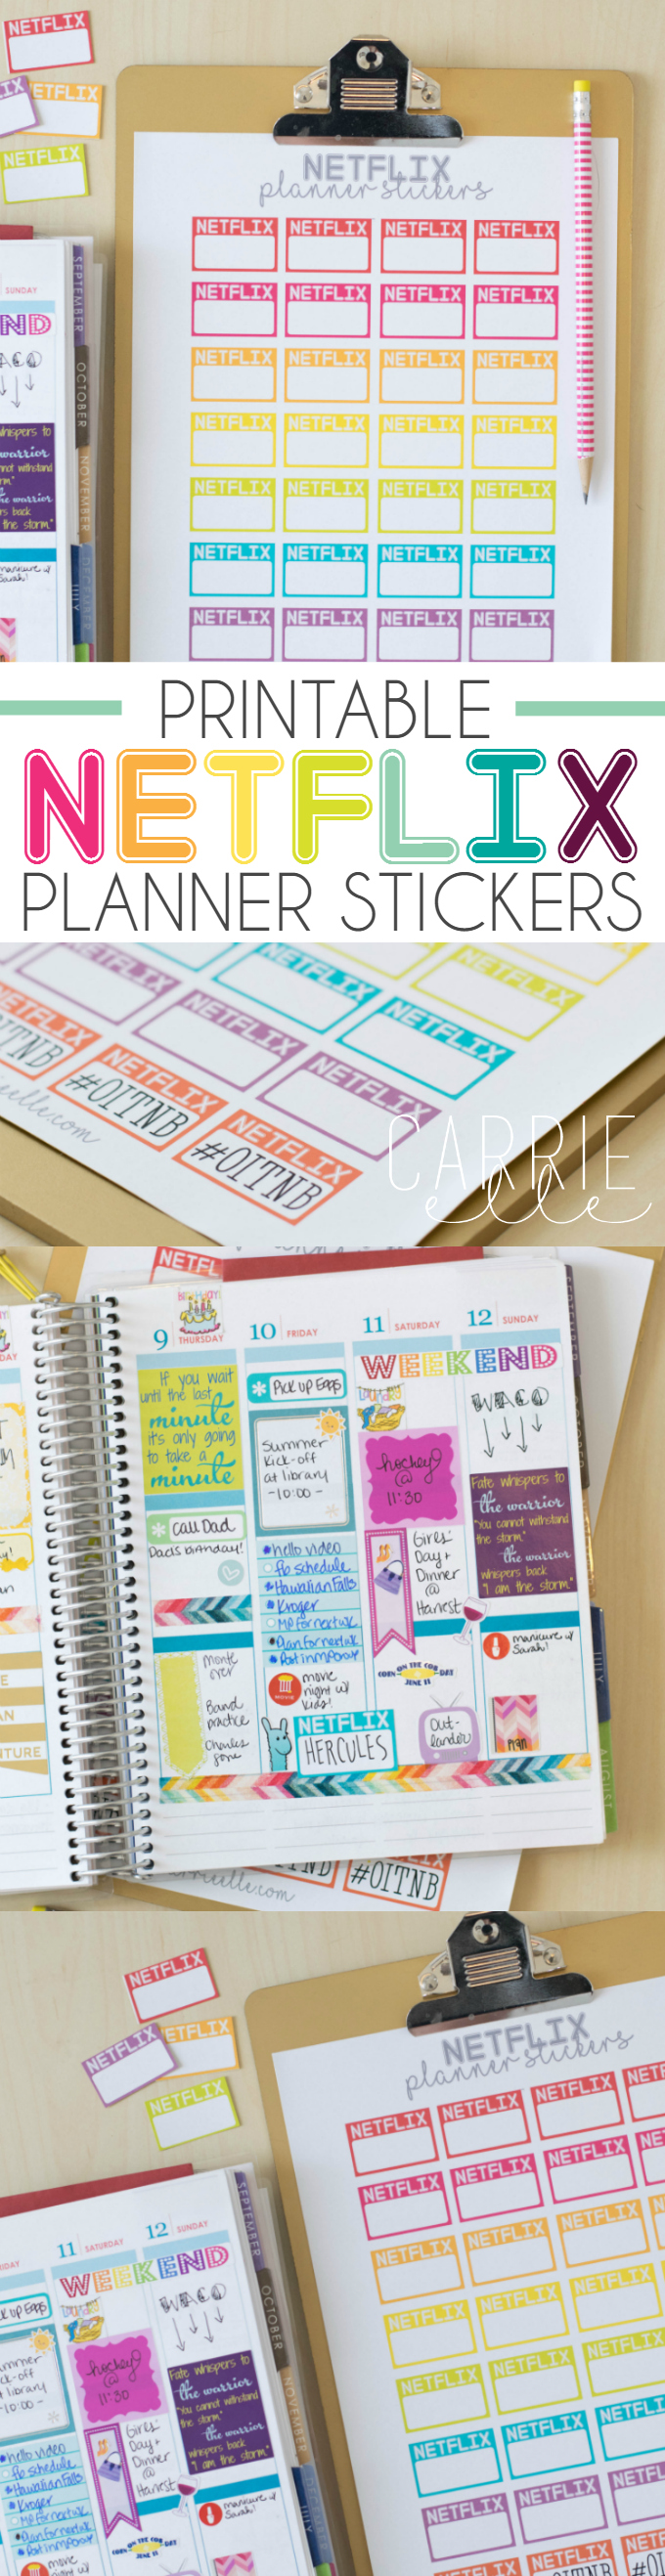 Printable Movie Night Planner Stickers - Carrie Elle